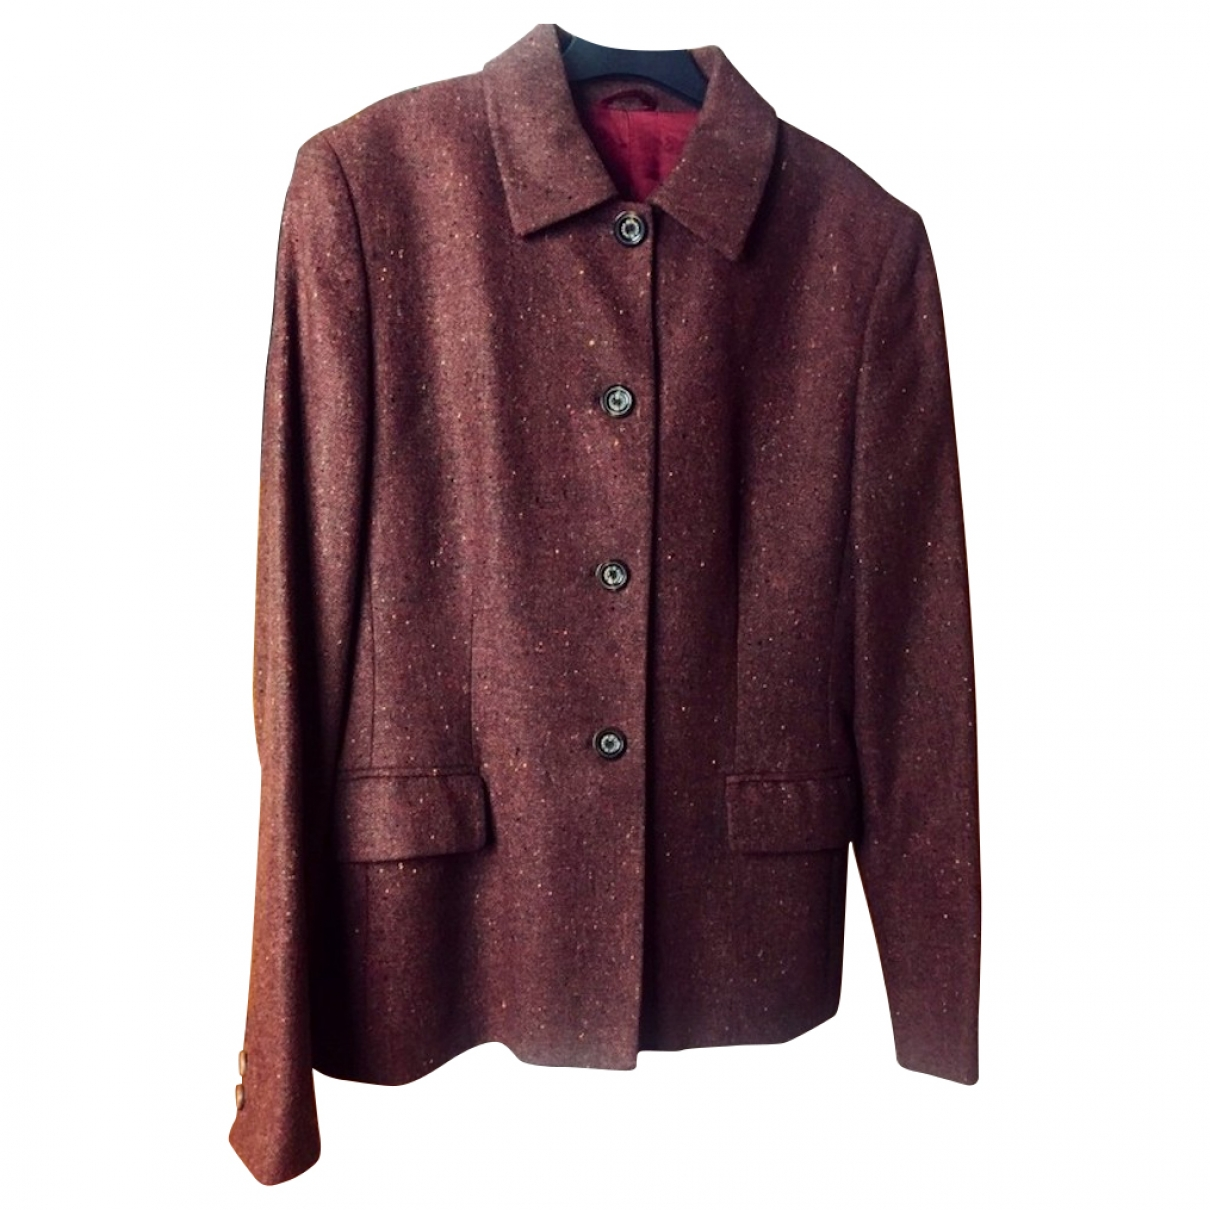 Aigner \N Burgundy Wool jacket for Women L International